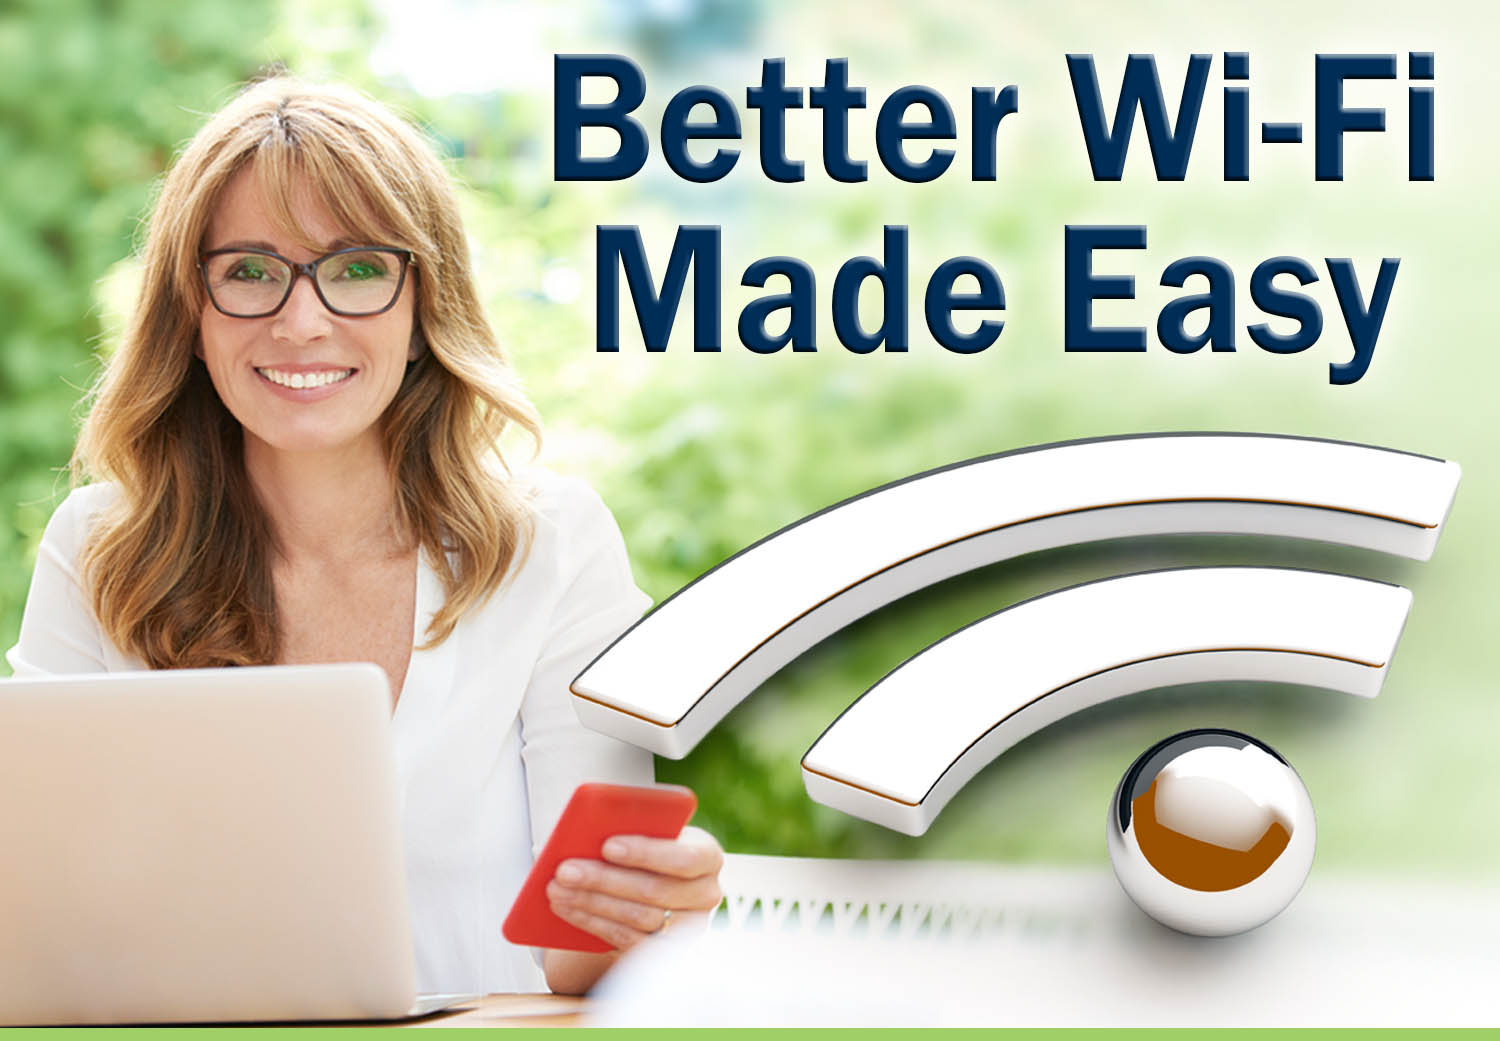 Better WiFi made easy button.jpg